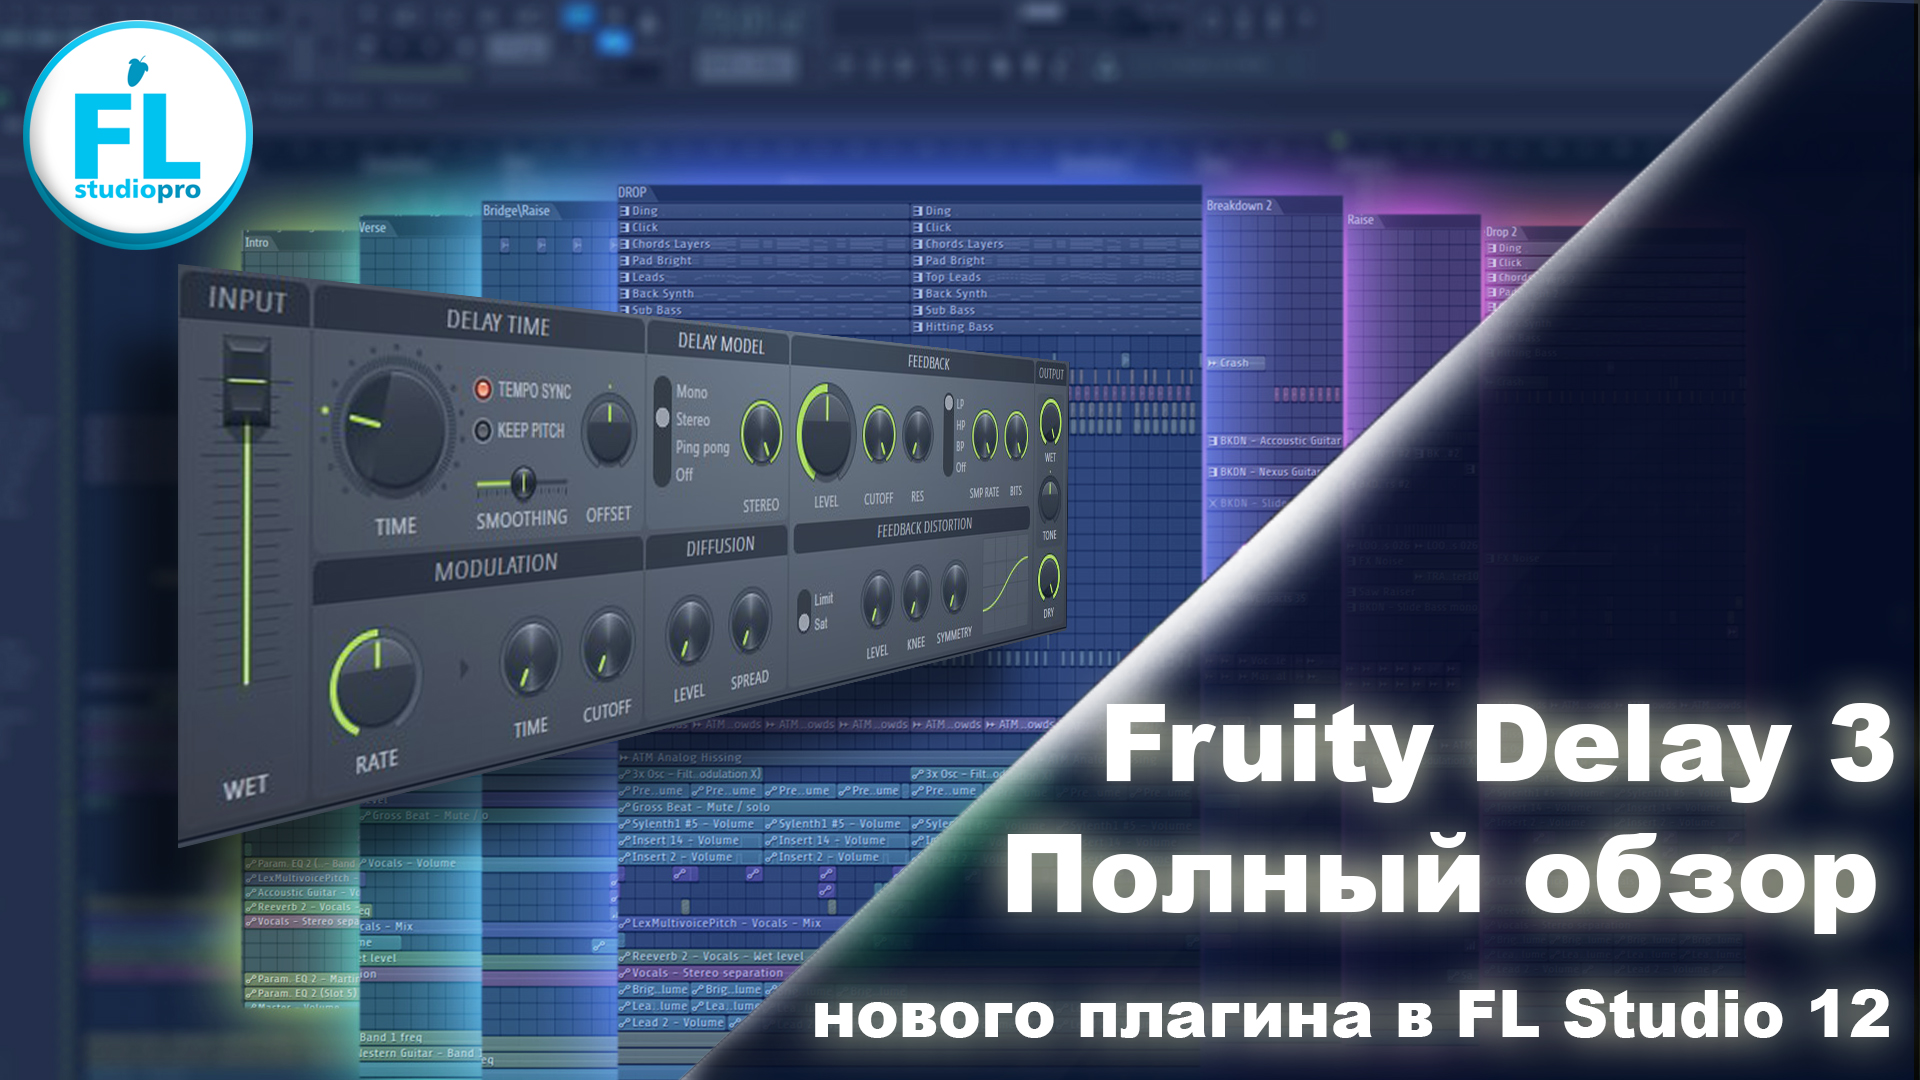 fl_studio_12_fruity_delay_3